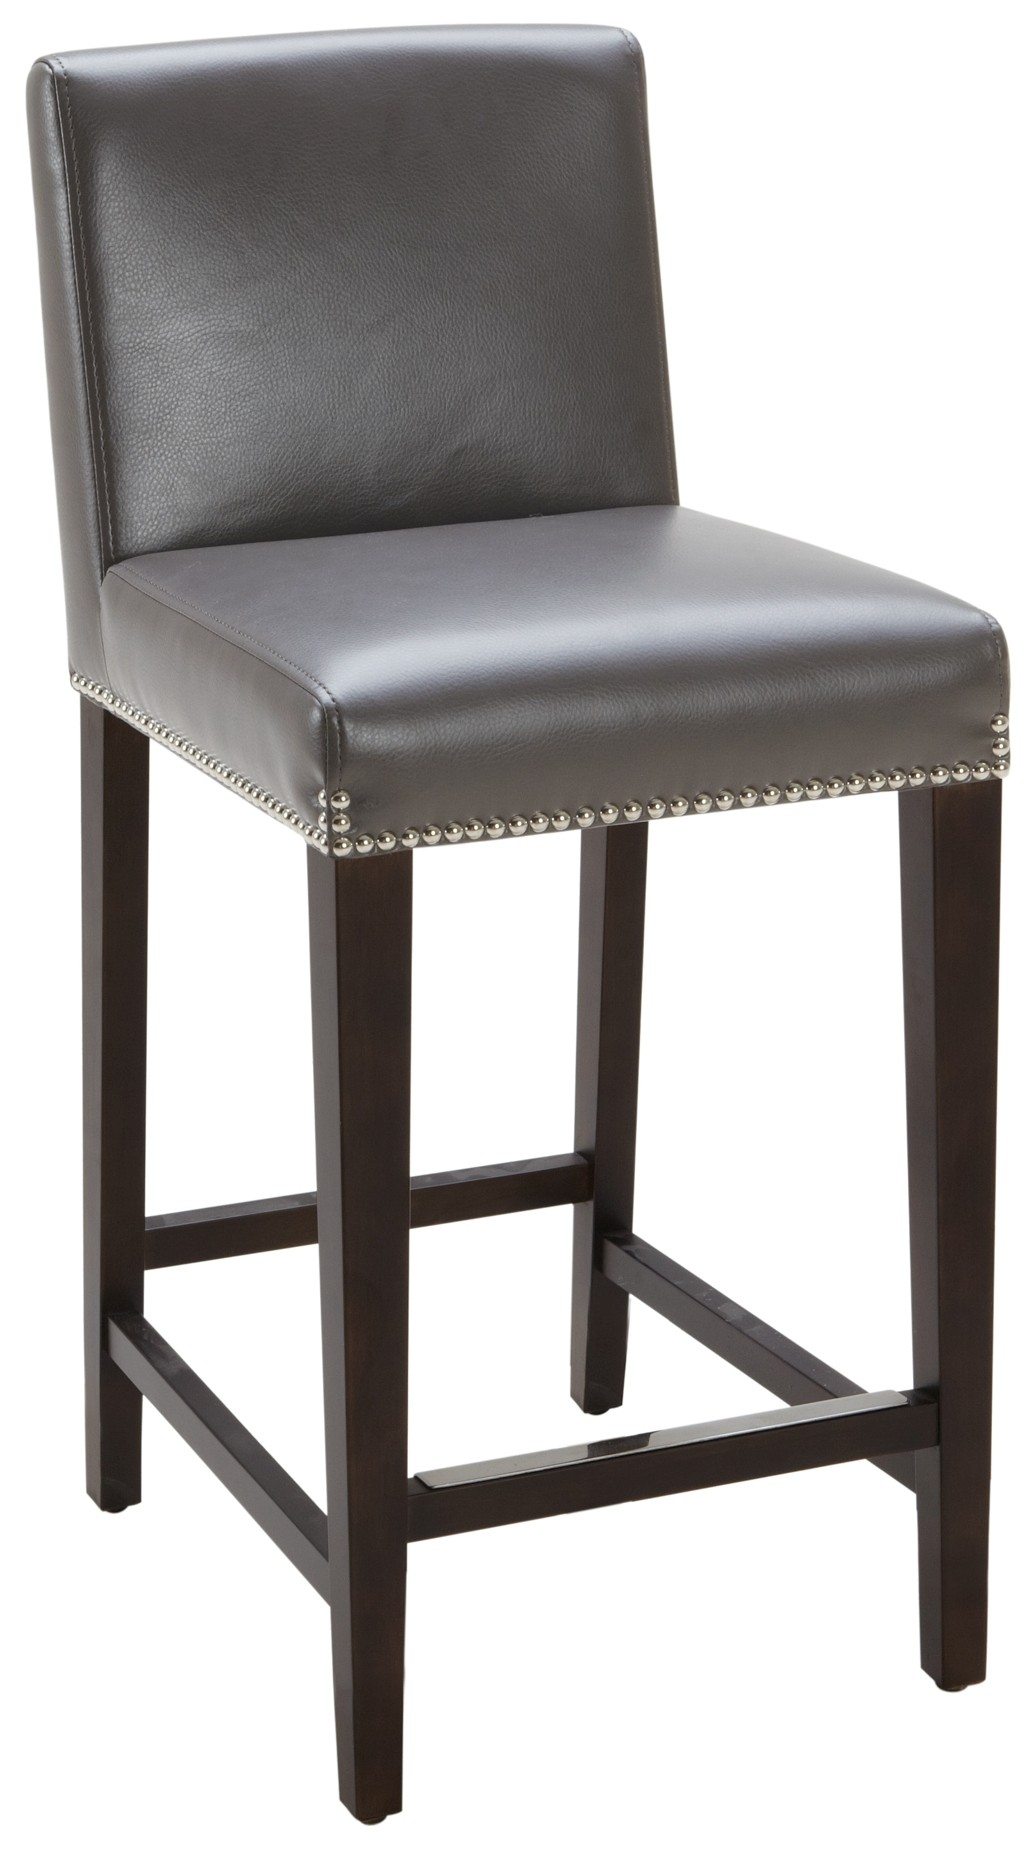 Brooke Grey Counter Stool From Sunpan 38408 Coleman